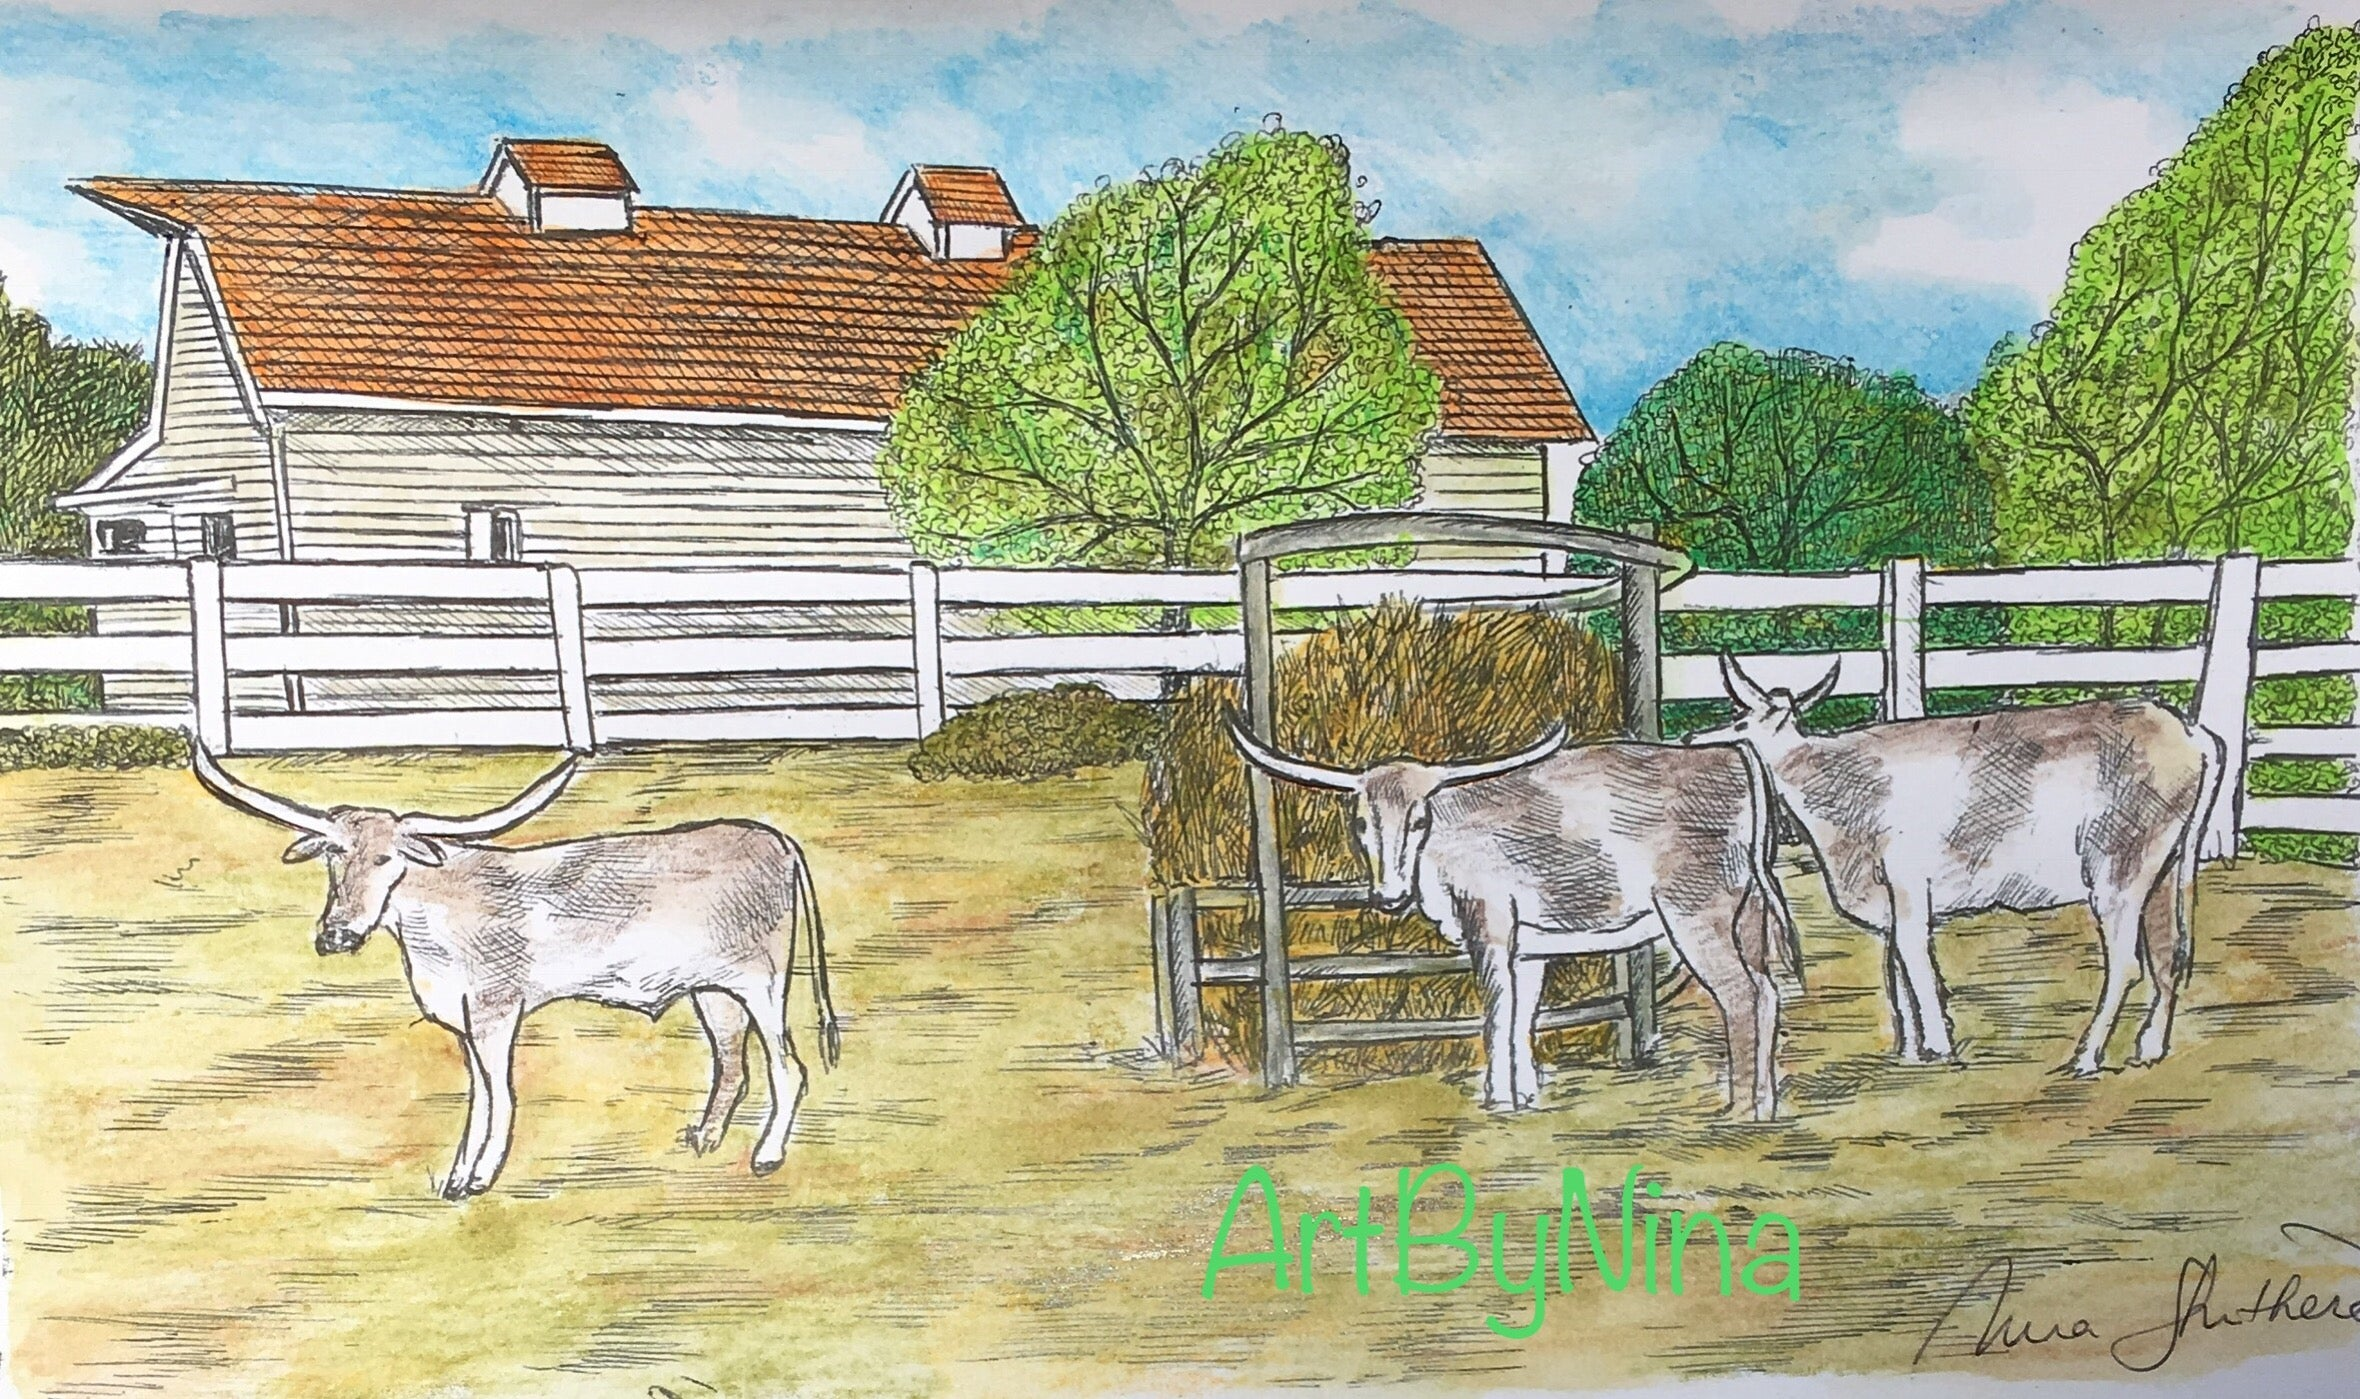 Architecture - Barn with Longhorns #303